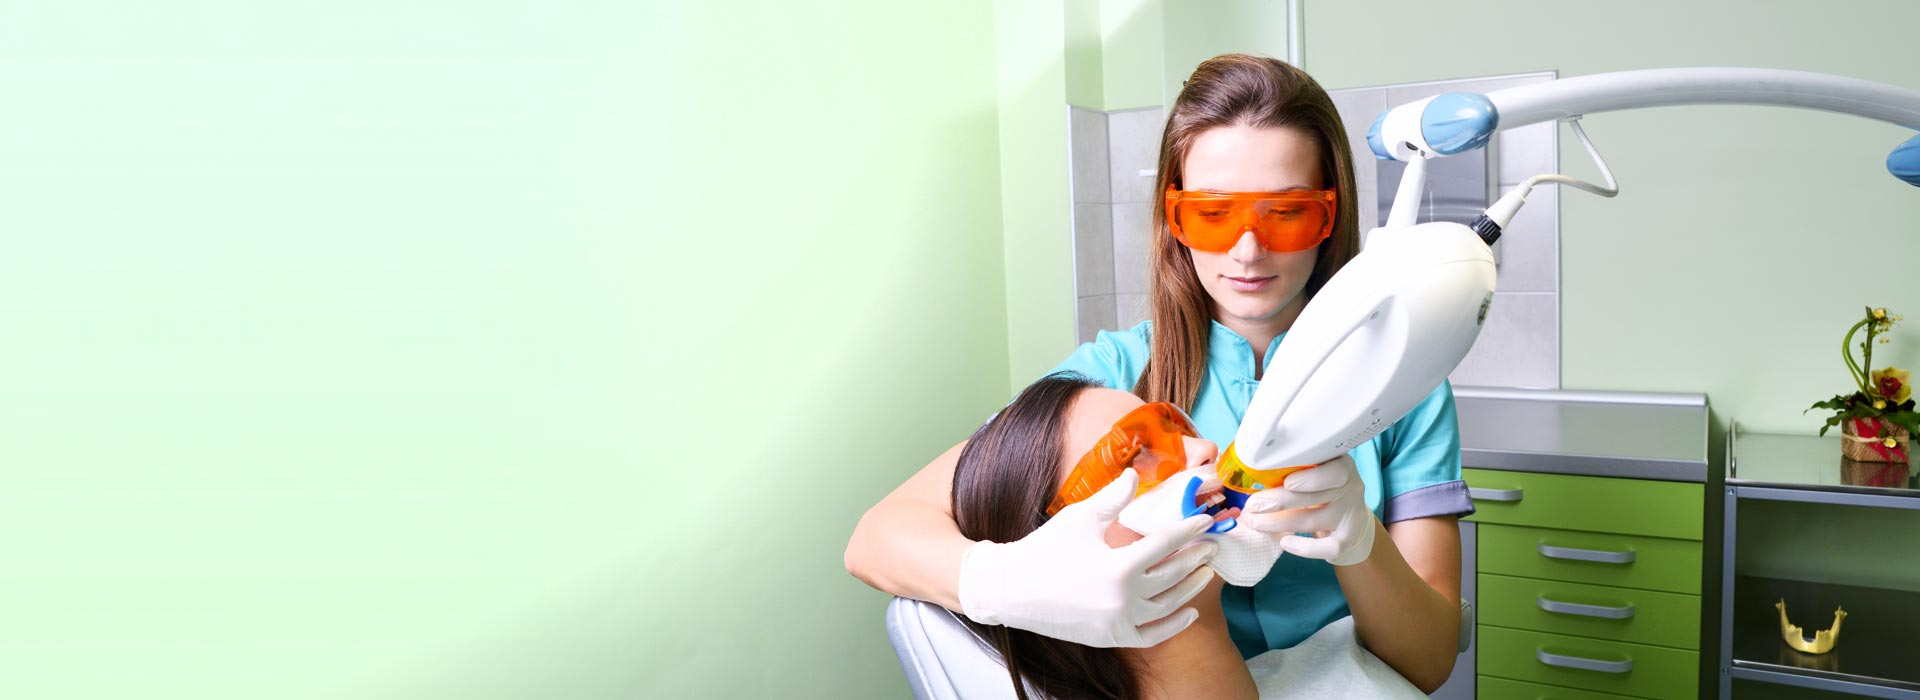 A woman is having treatment at the dental clinic